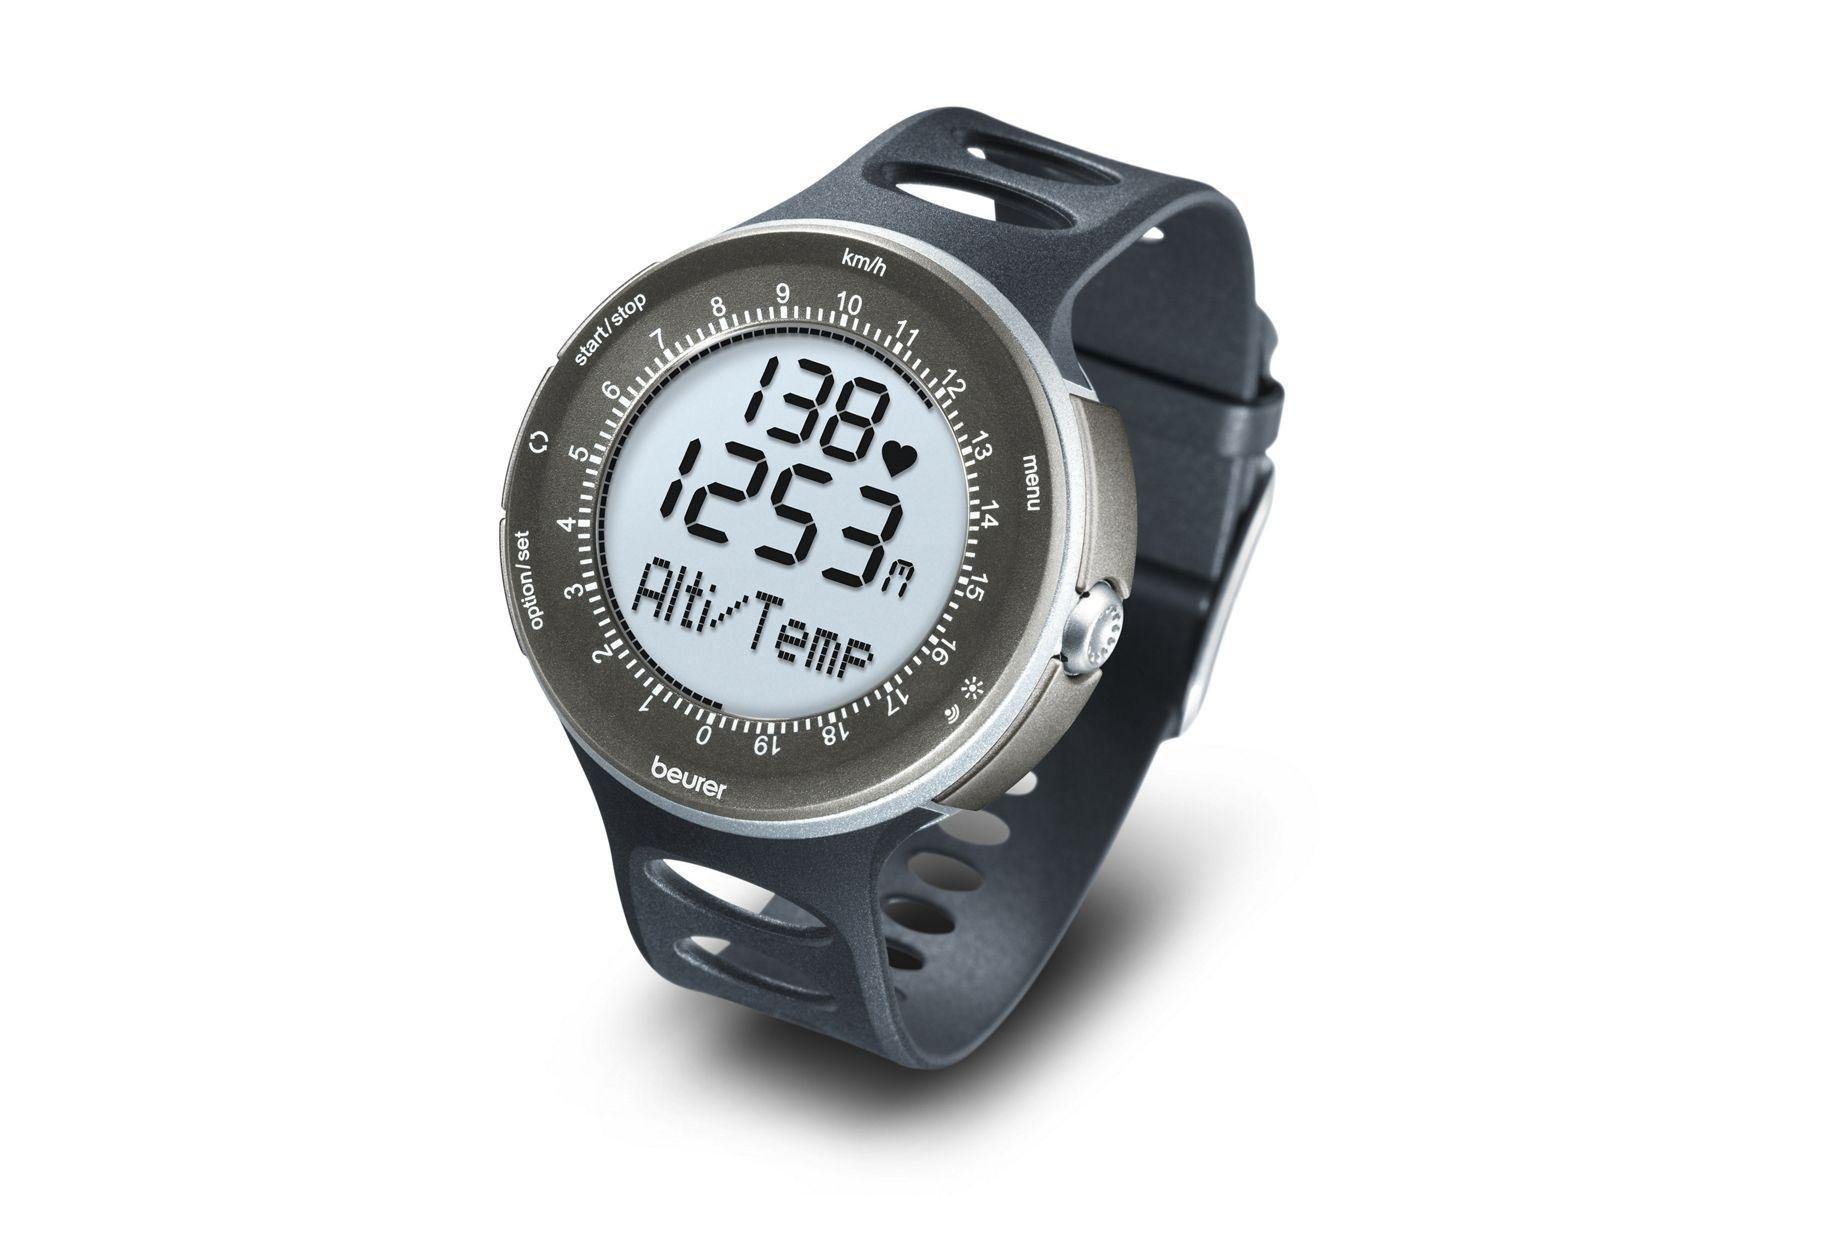 Beurer - PM90 Wrist Heart Rate Monitor